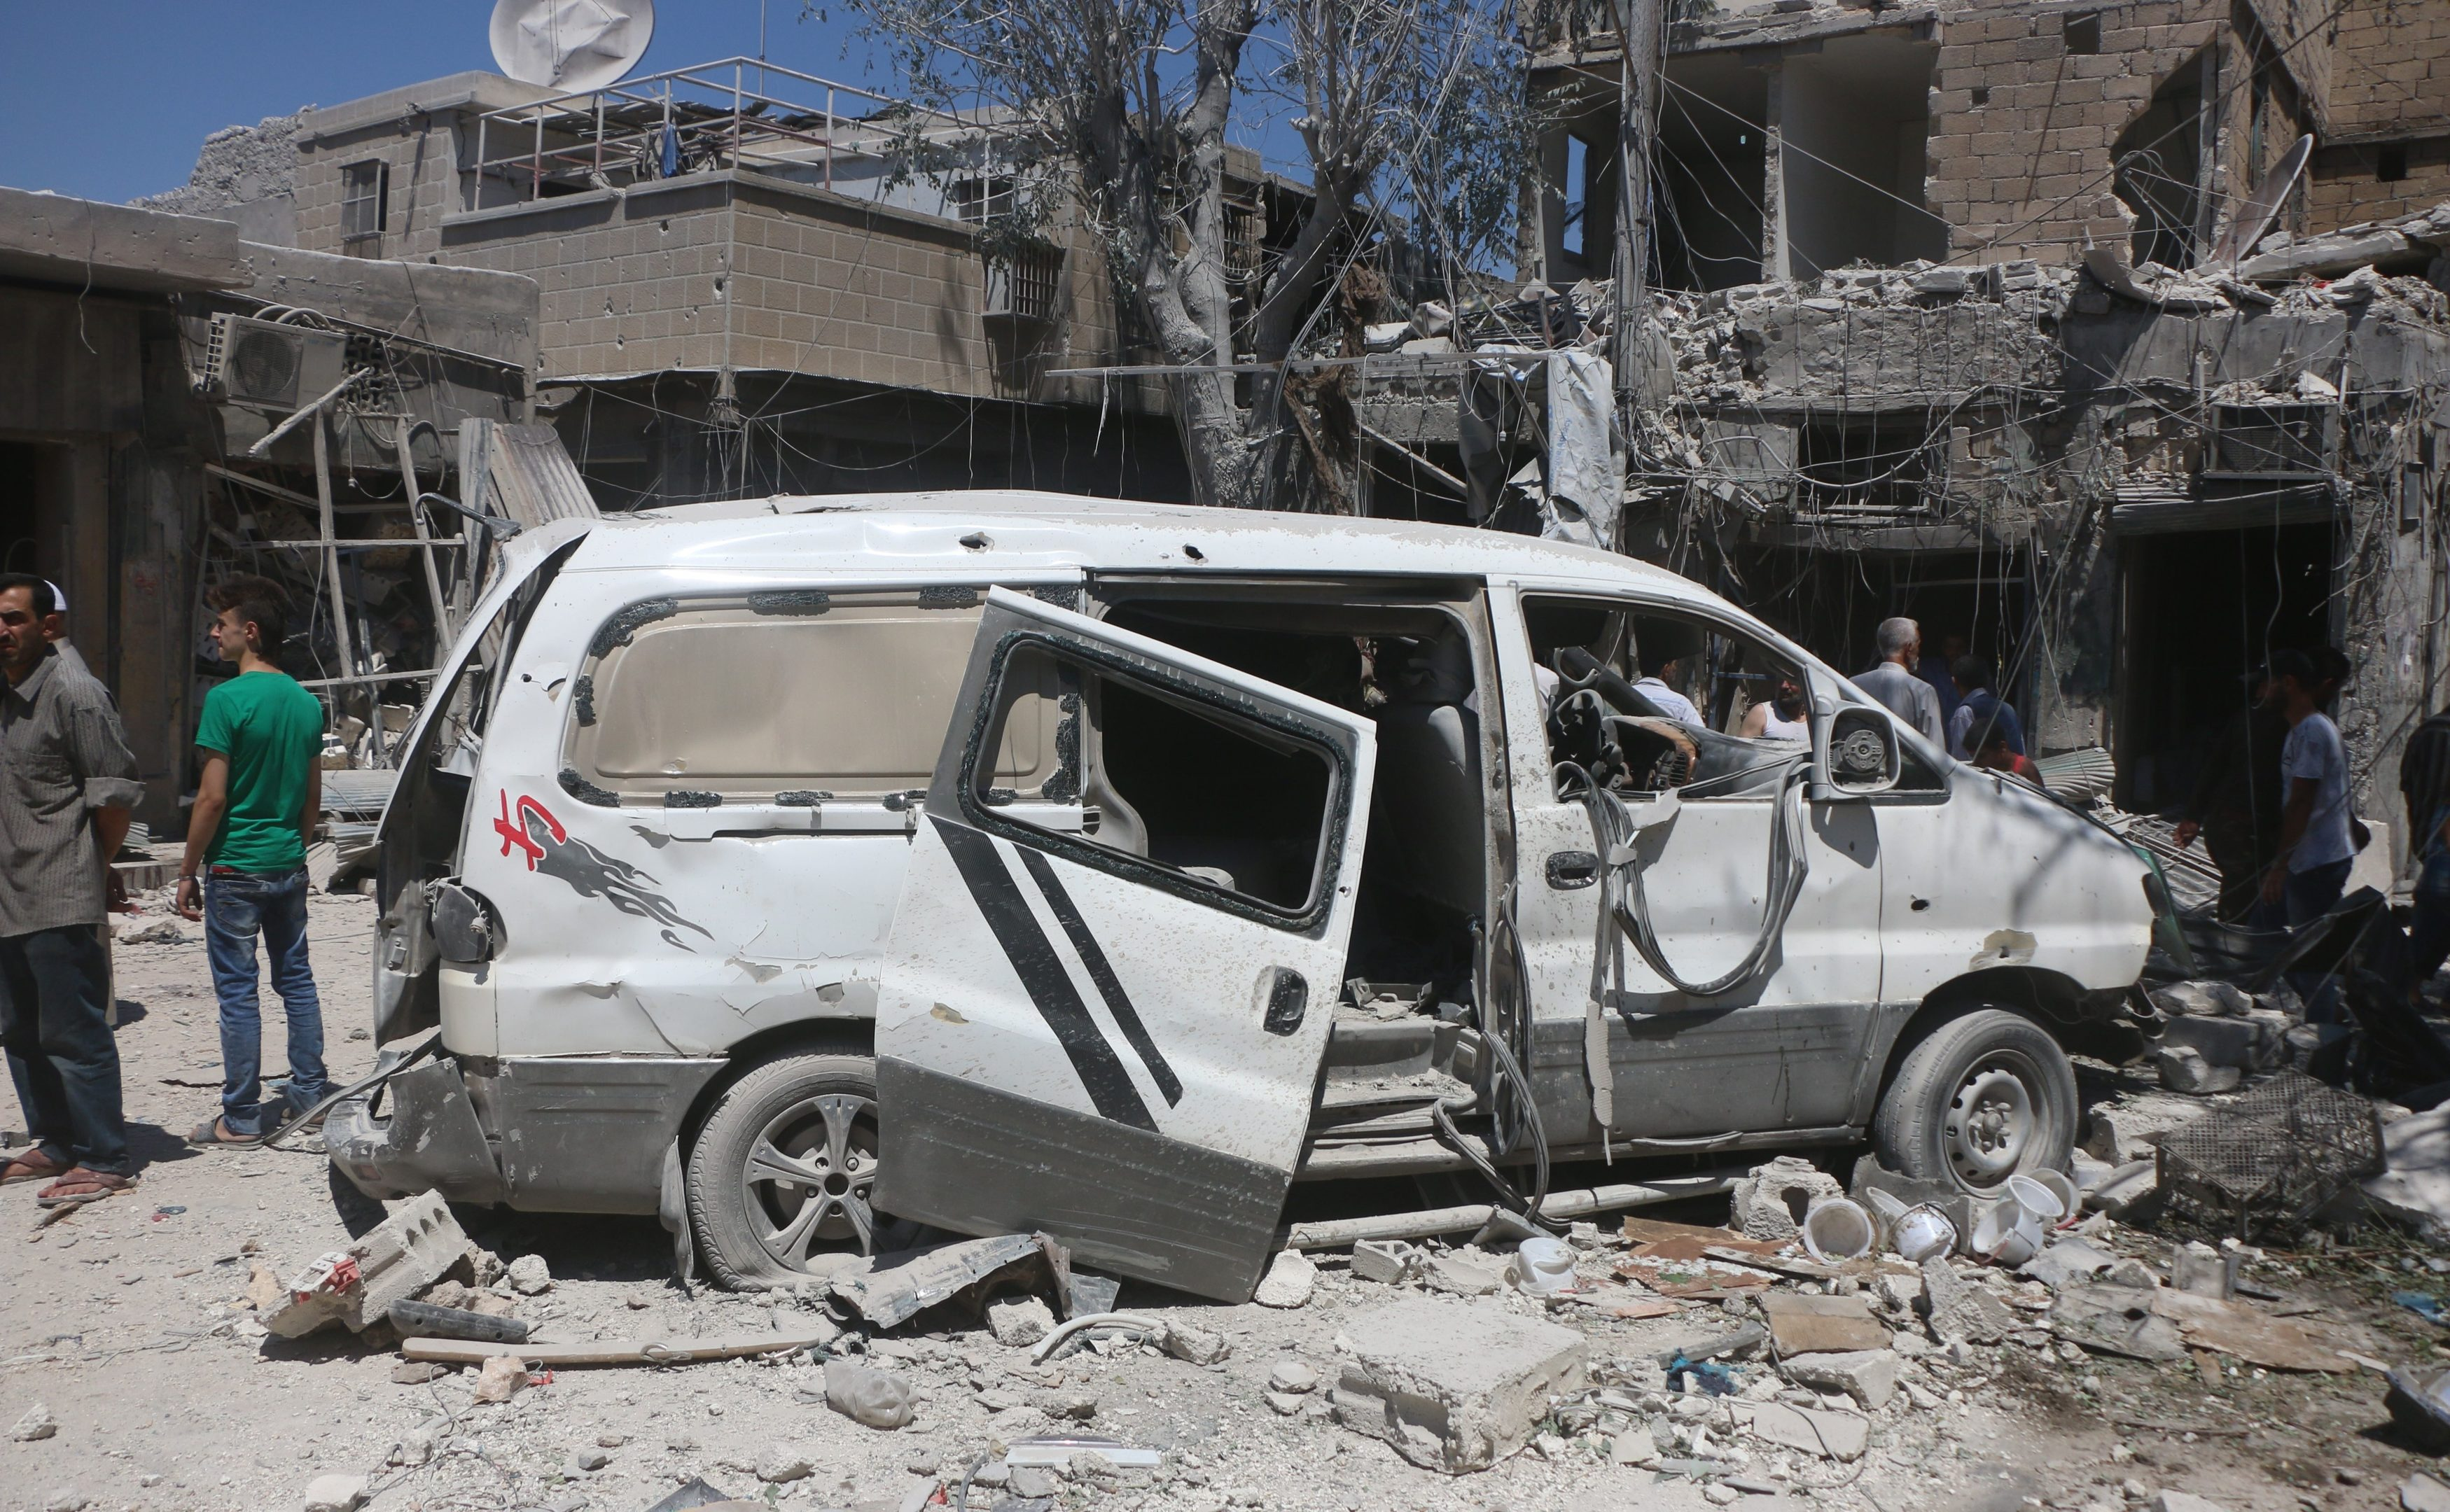 The families were forced to flee the civil war which has caused so much destruction in Syria.